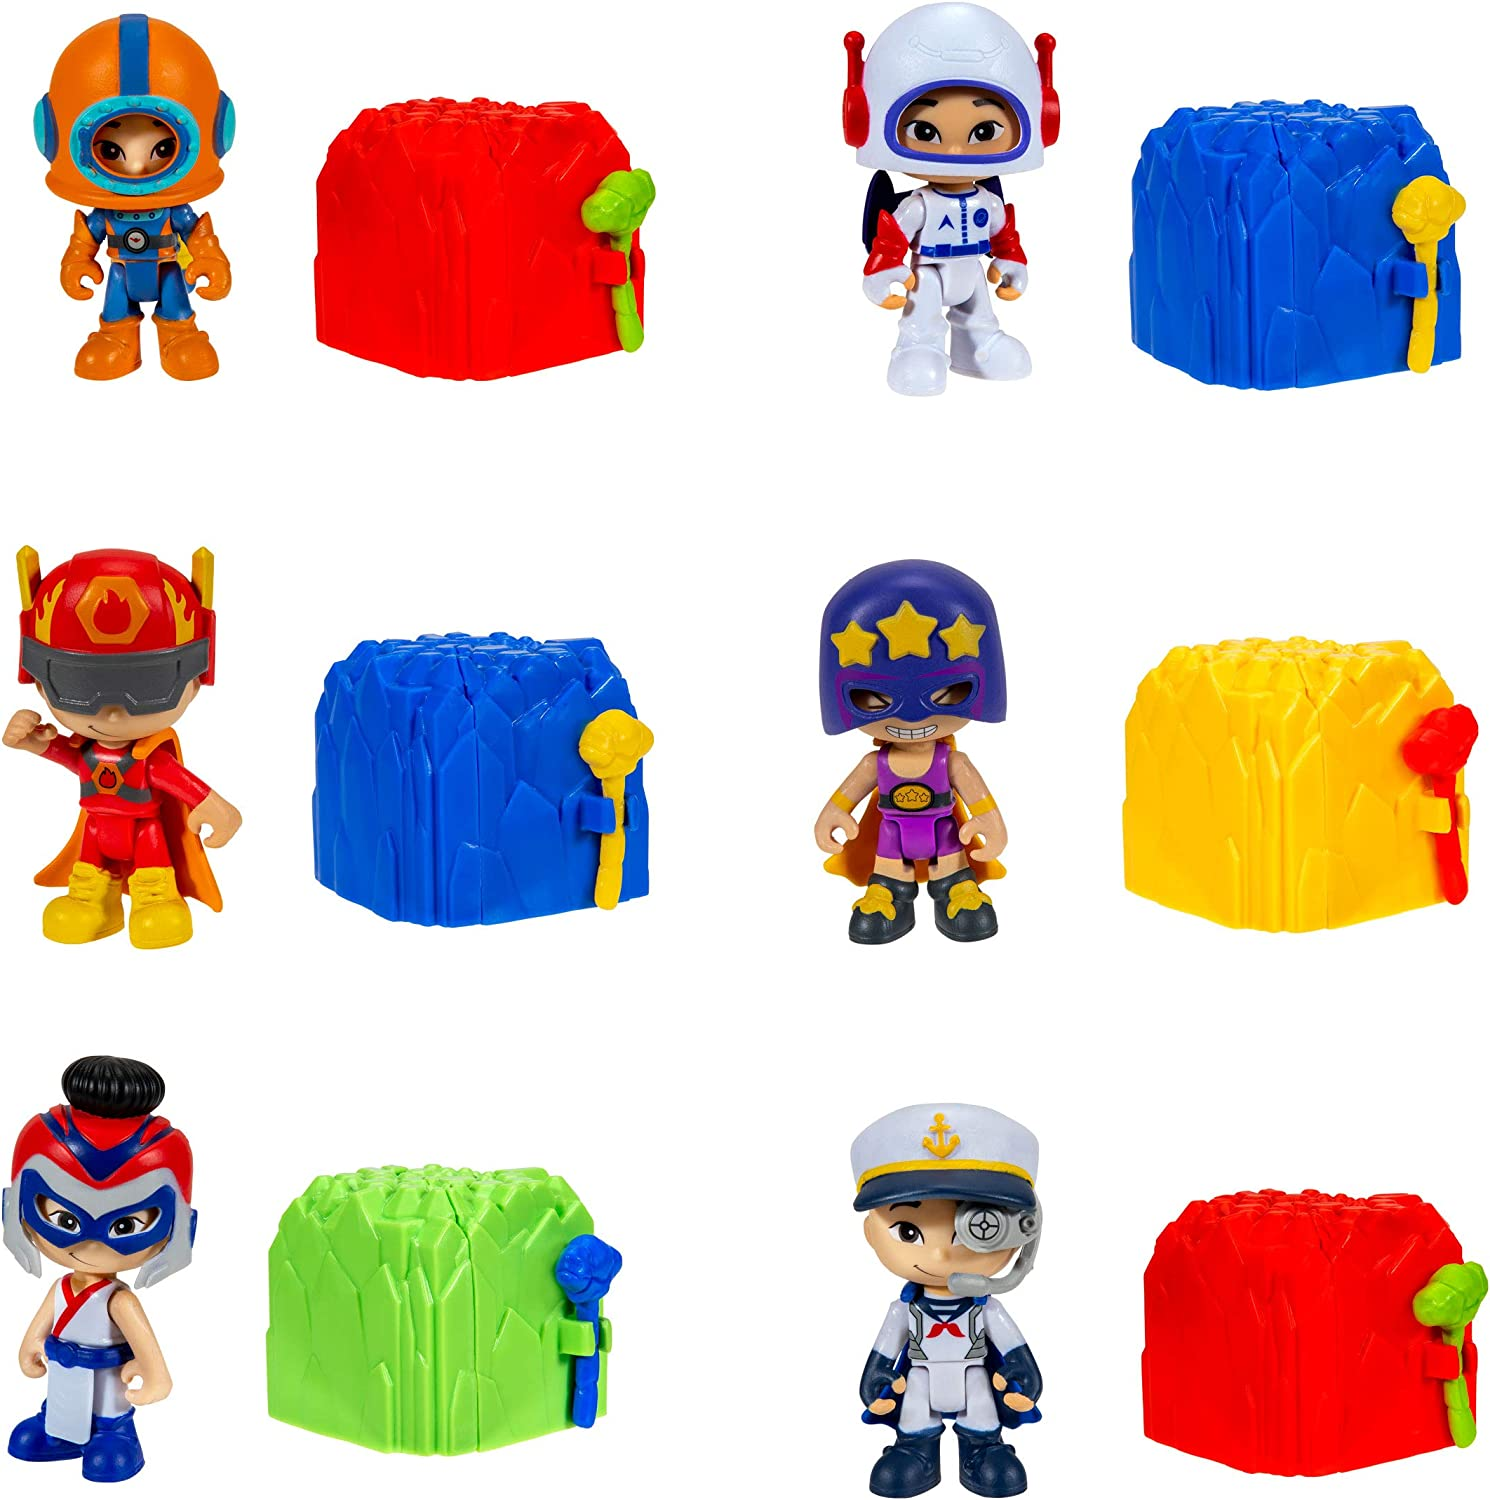 CKN Toys Hero Large NEW before selling discharge sale Smash Build 6 - Pack Racer Exclusive Pilot